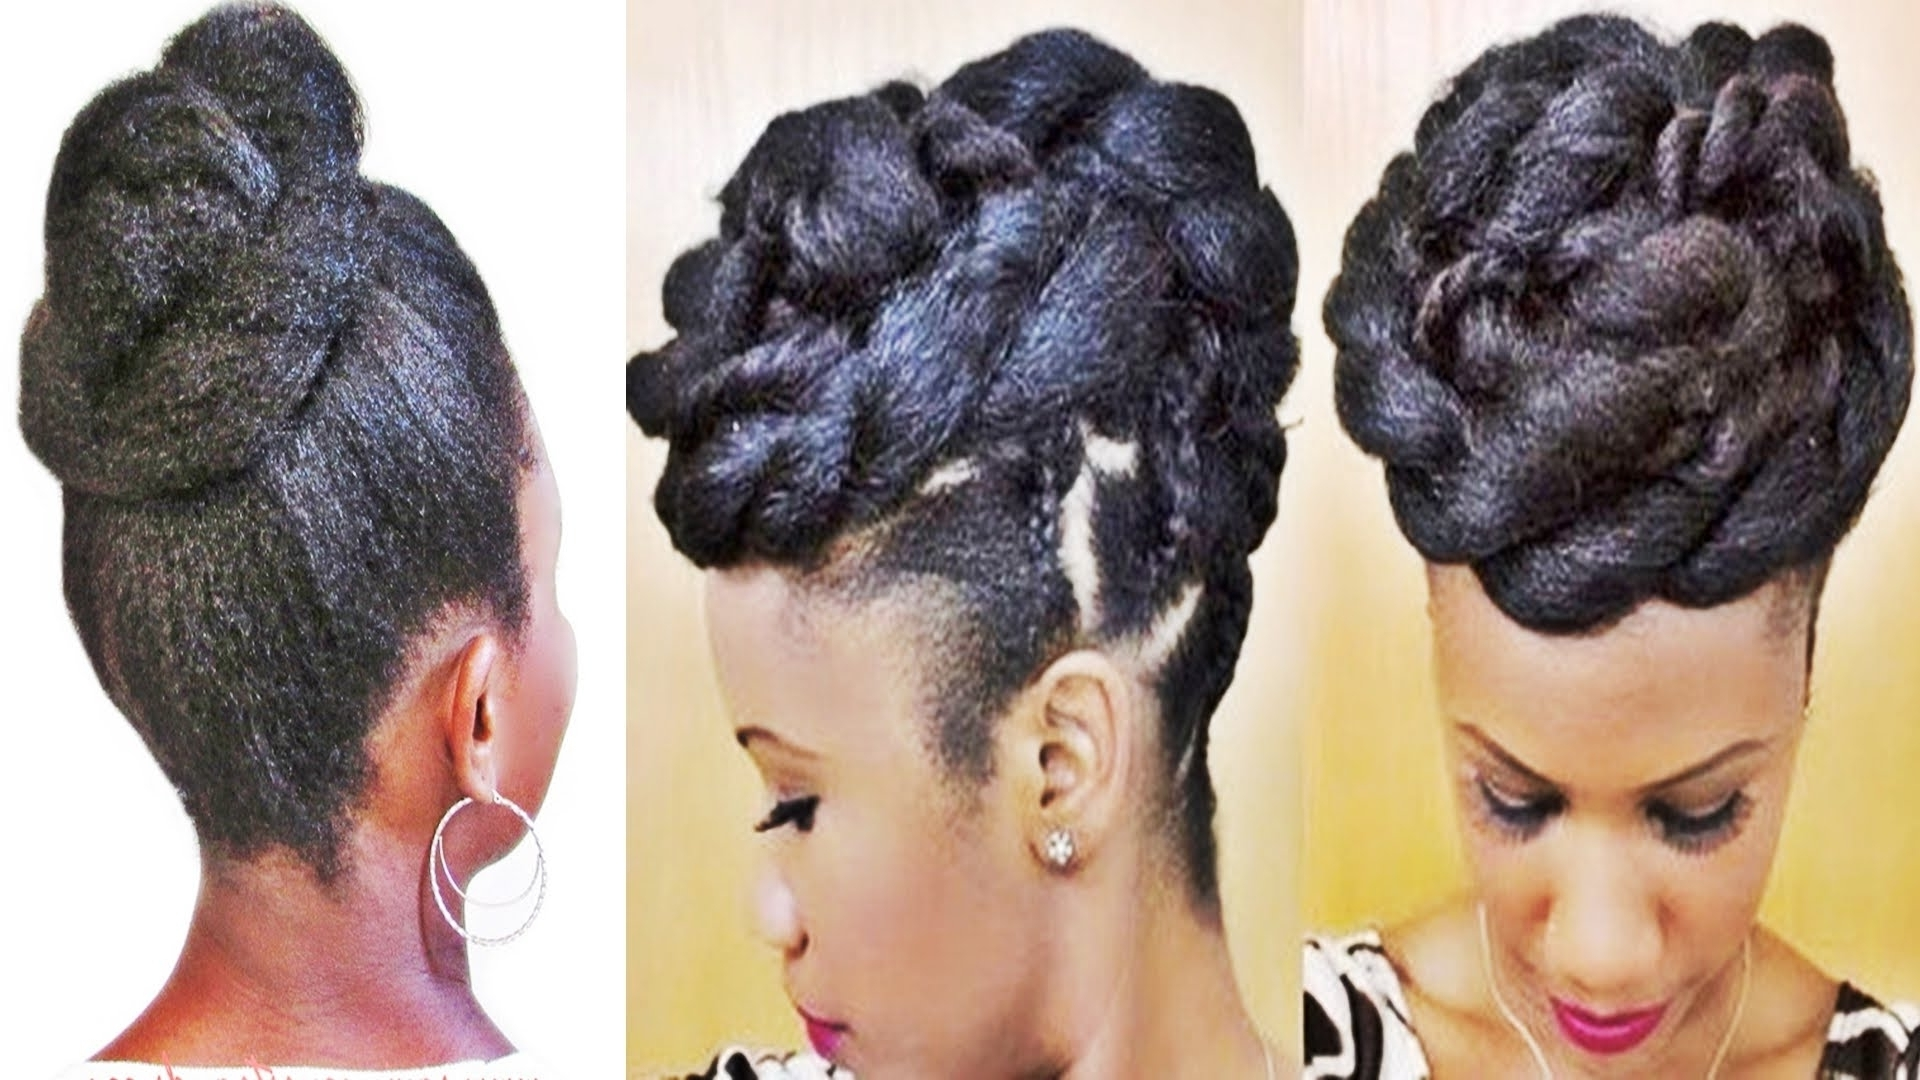 Braids And Twists Updo Hairstyle For Black Women – Youtube Inside With Regard To Twisted Bun Updo Hairstyles (View 3 of 15)